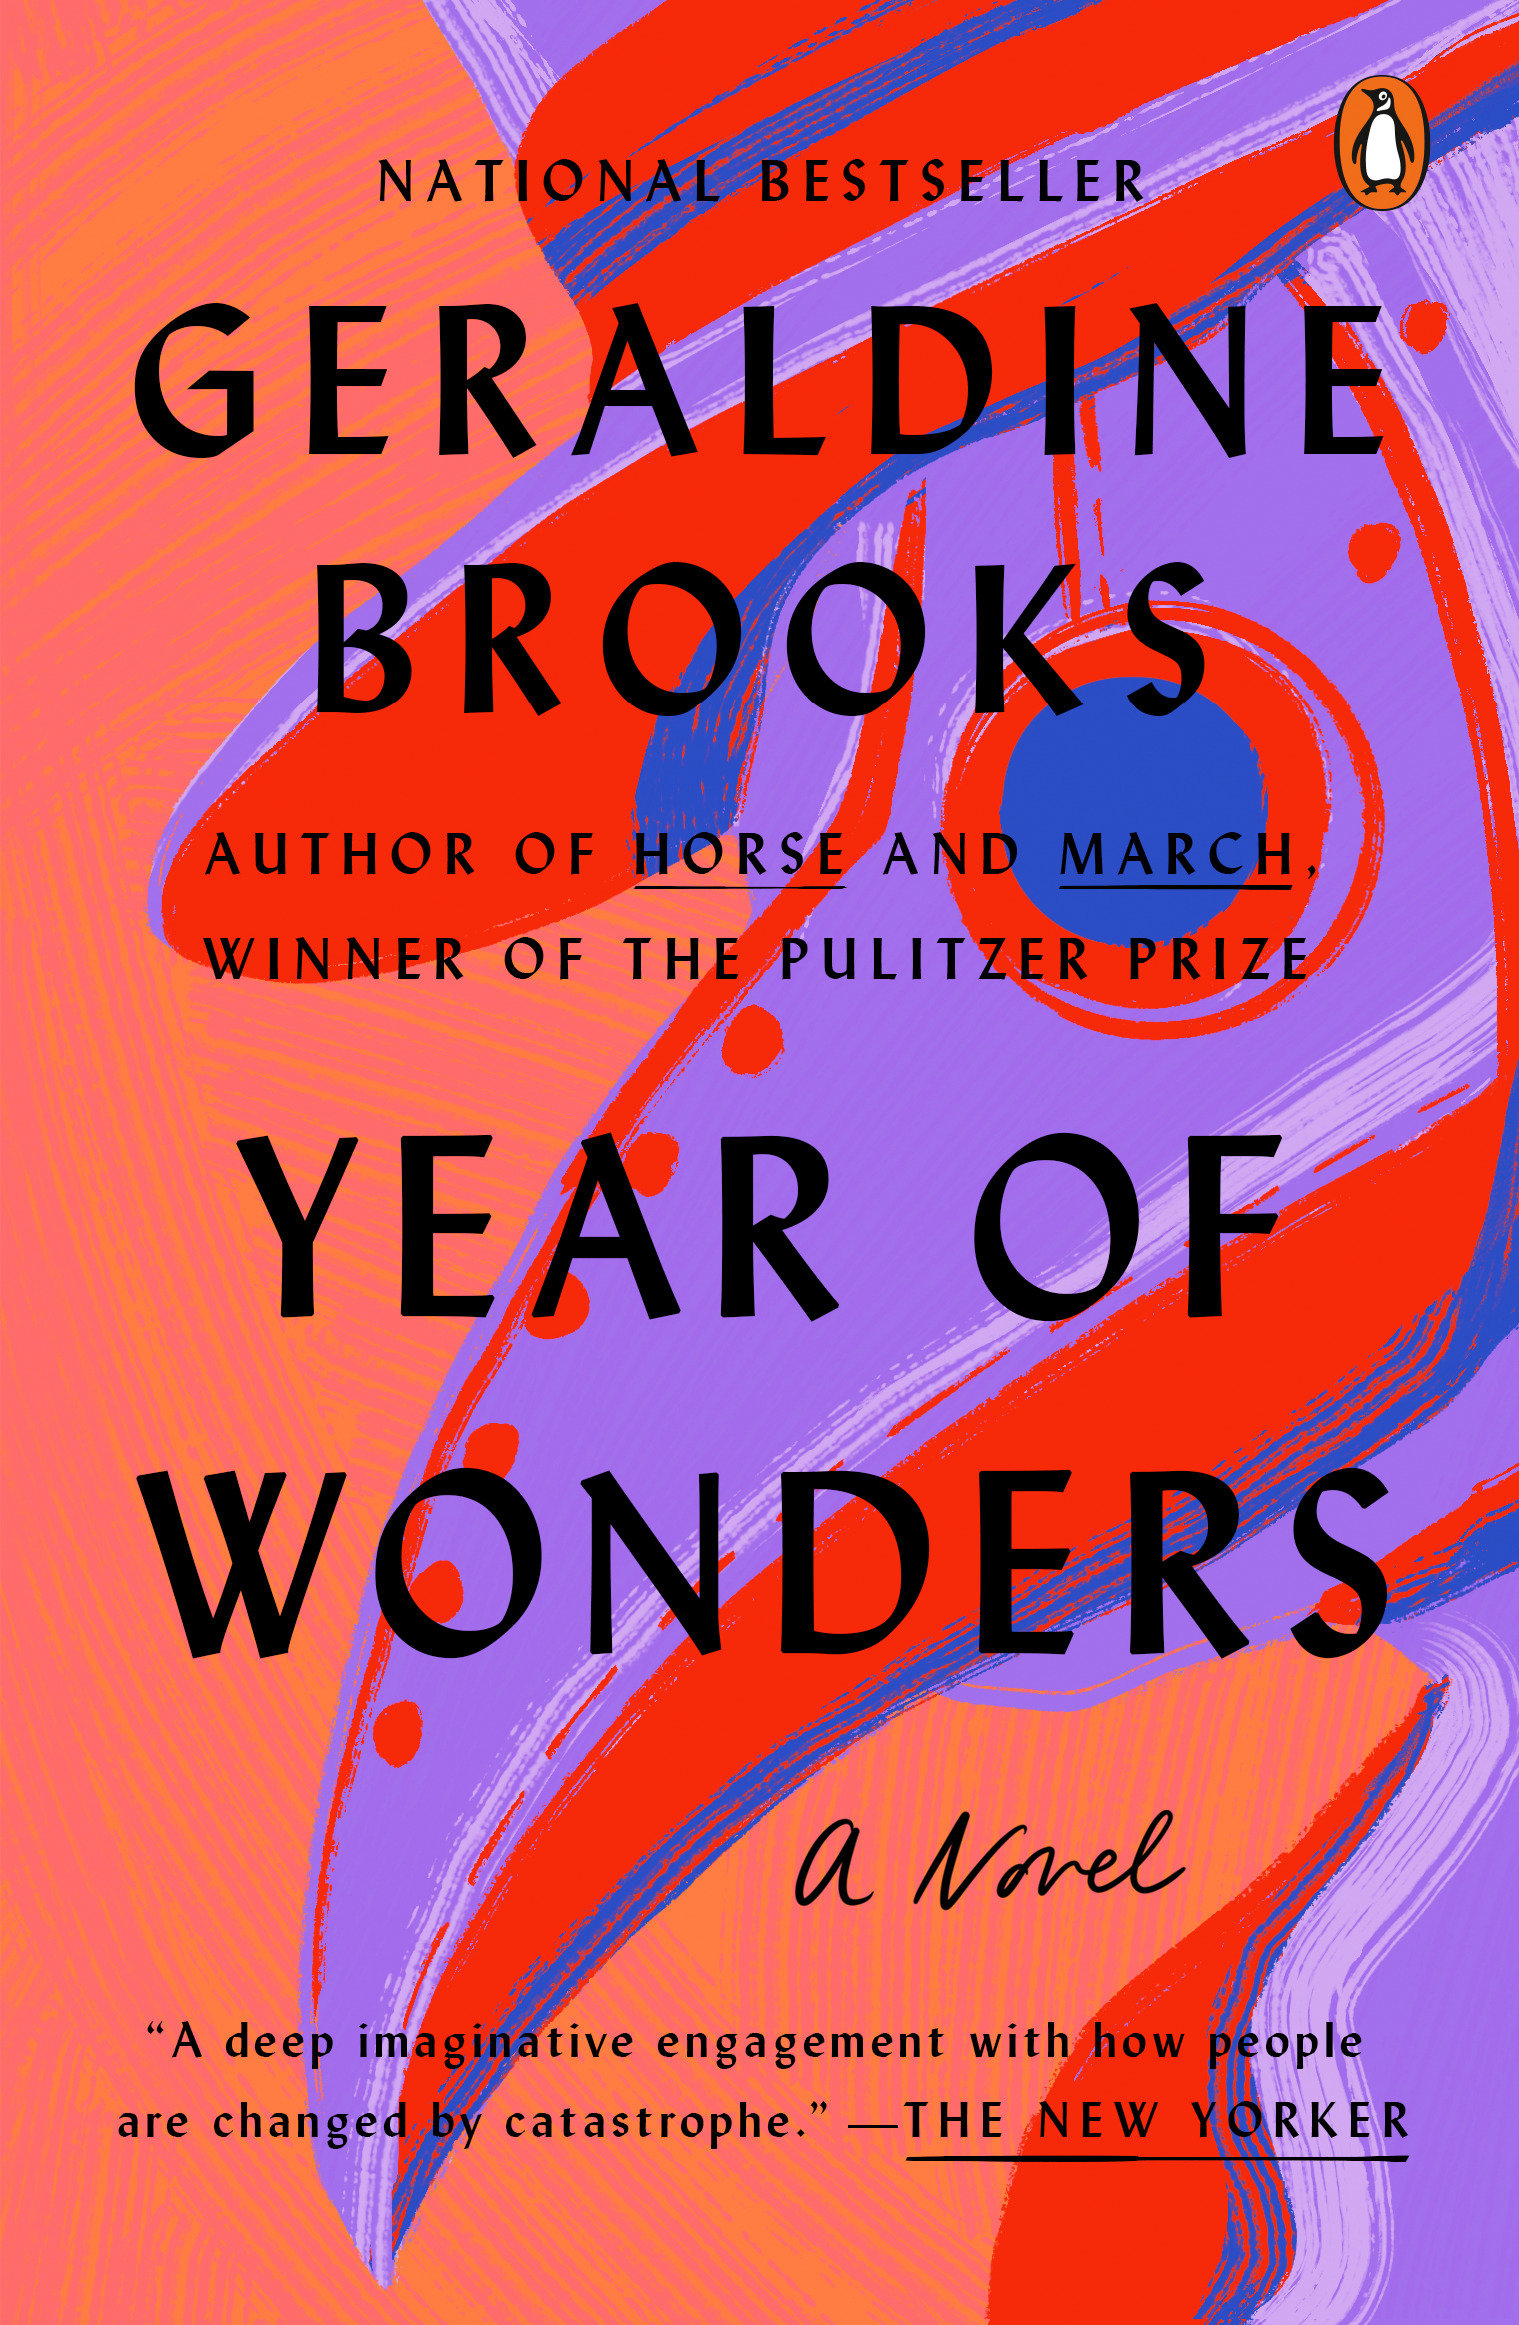 Year of wonders a novel of the plague cover image